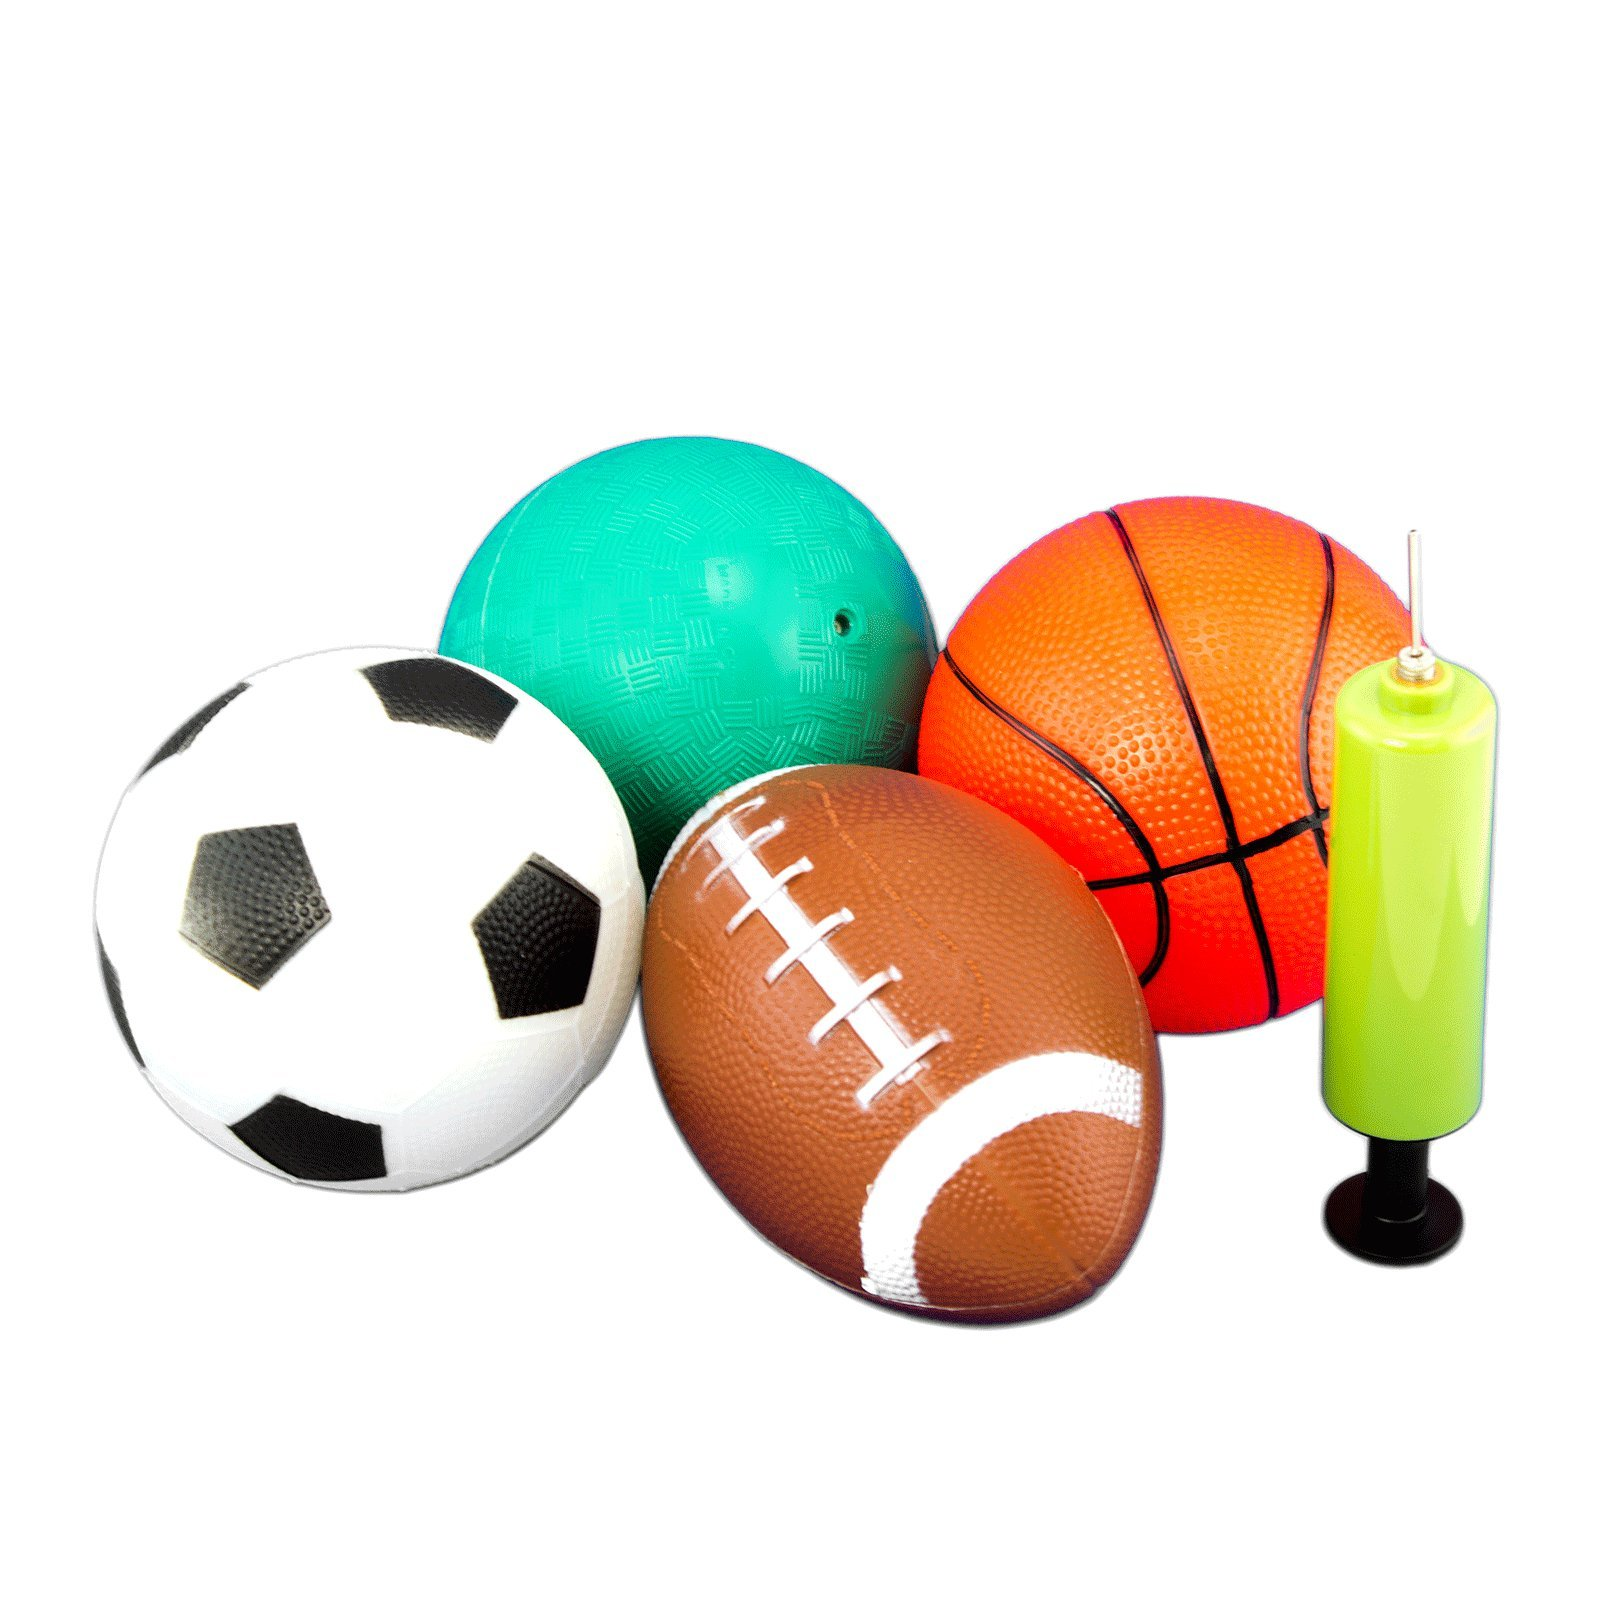 Tytroy 4 Piece 5'' Sport Balls with 1 Pump (Basketball, Soccer Ball, Football, Playground/Kickball) by Tytroy